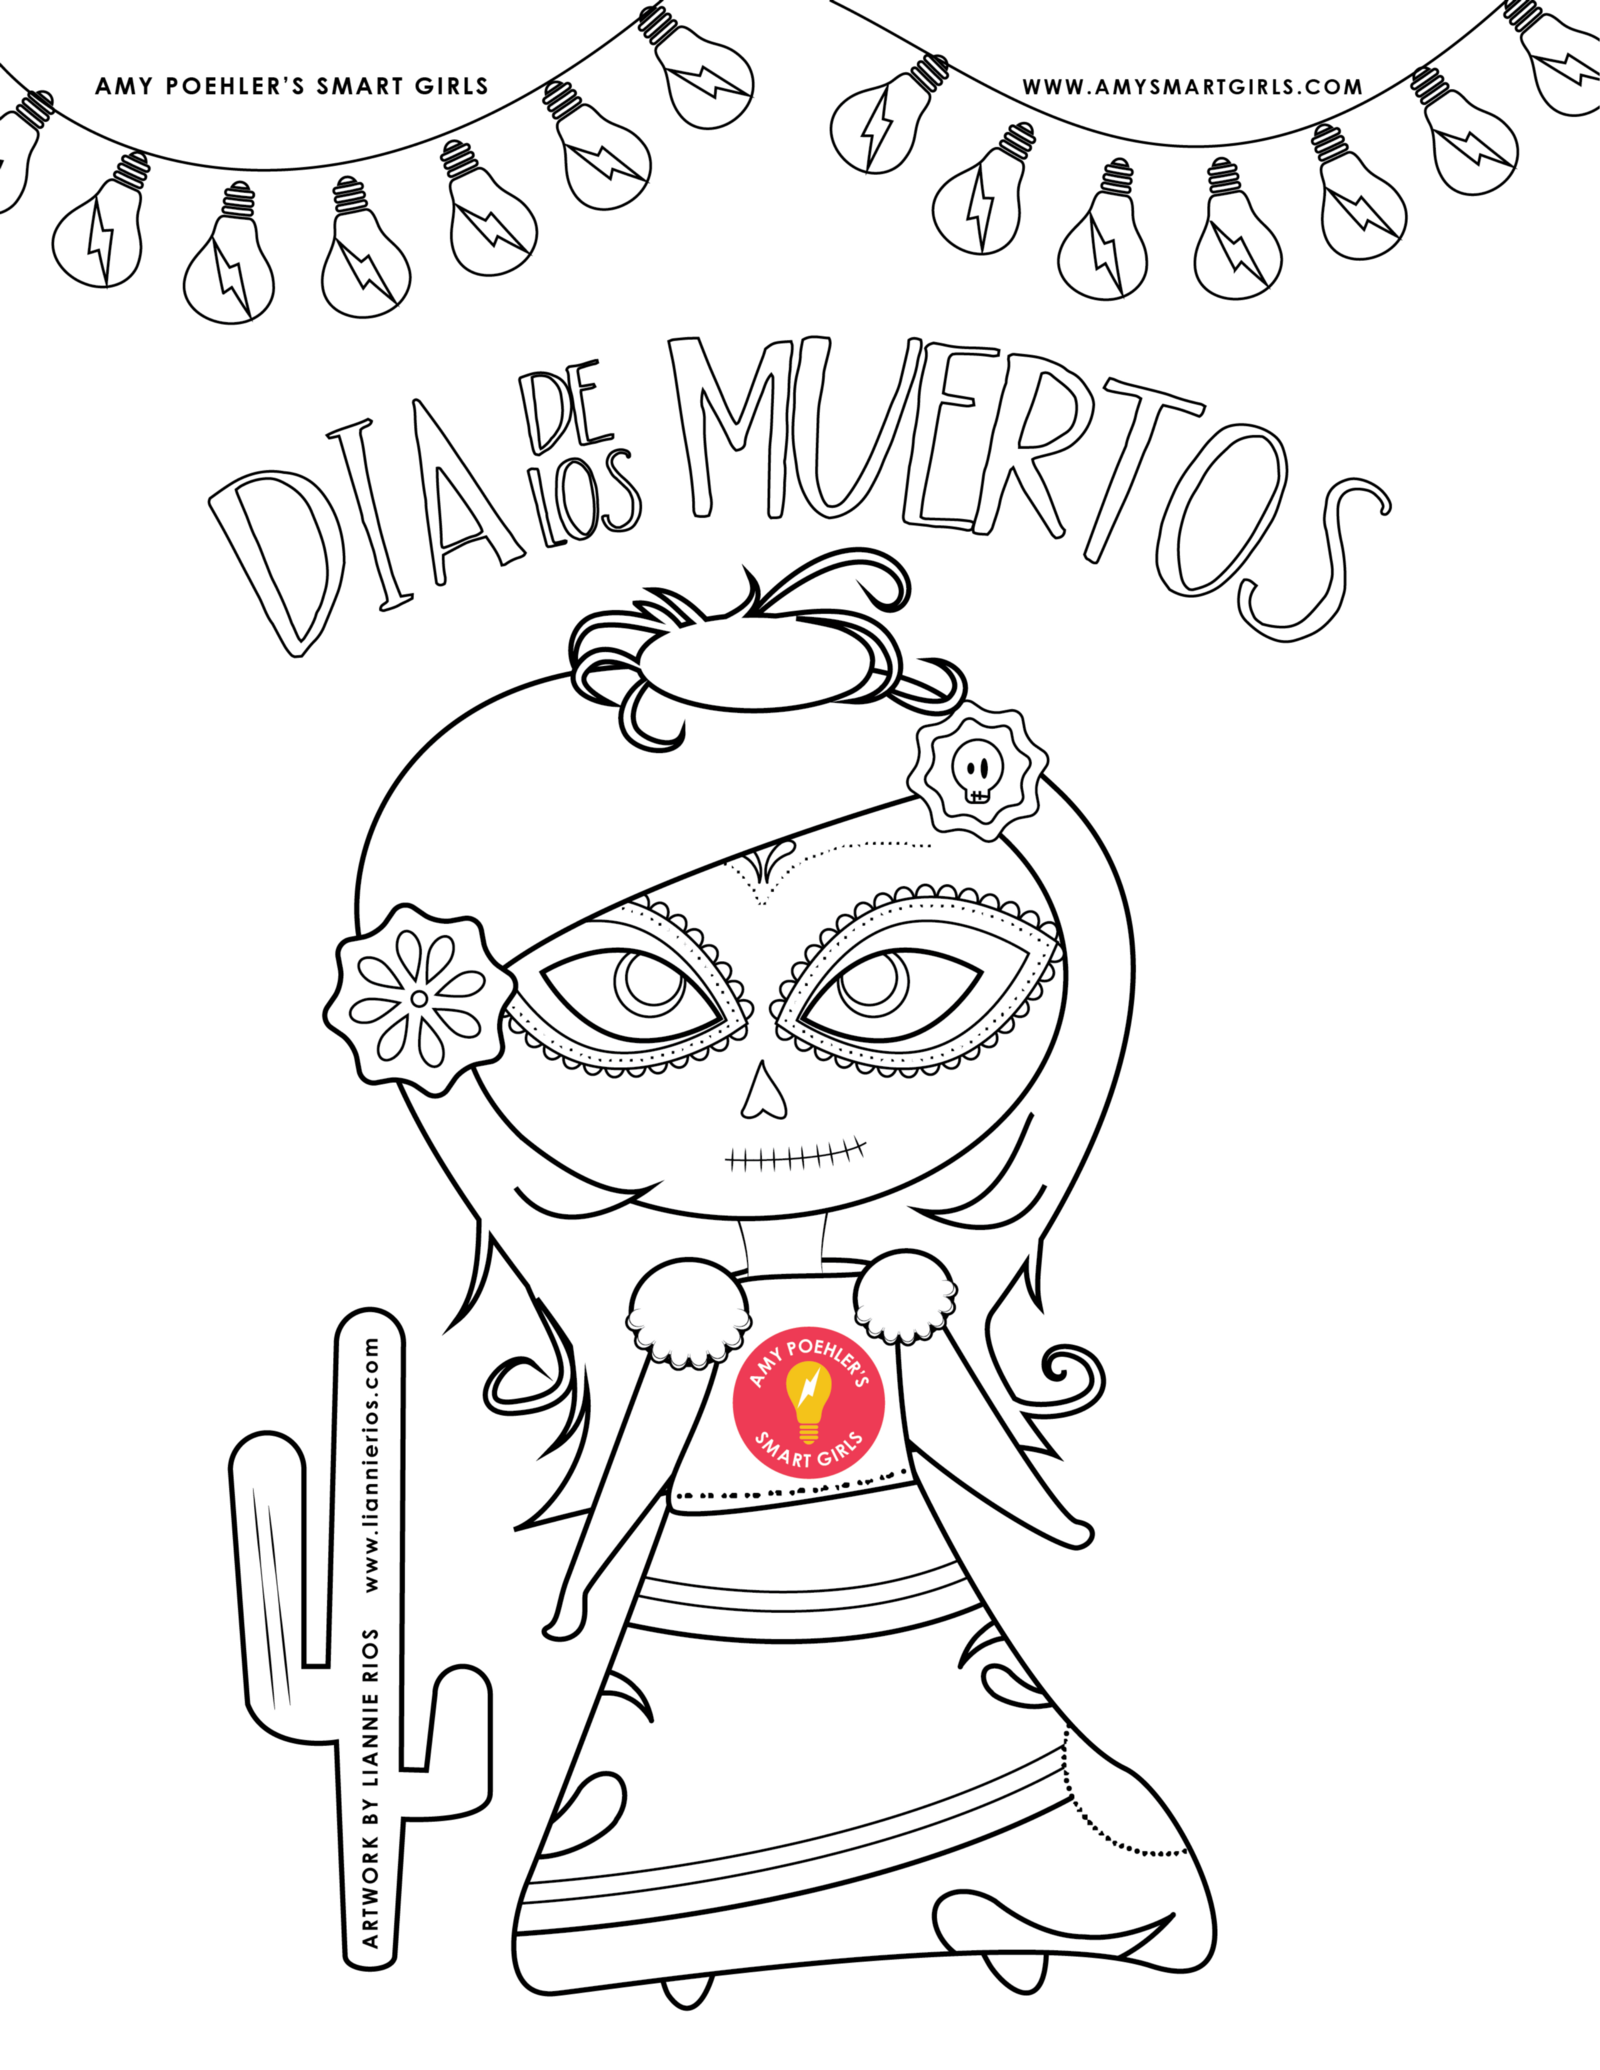 day of the dead coloring page u2013 amy poehler u0027s smart girls